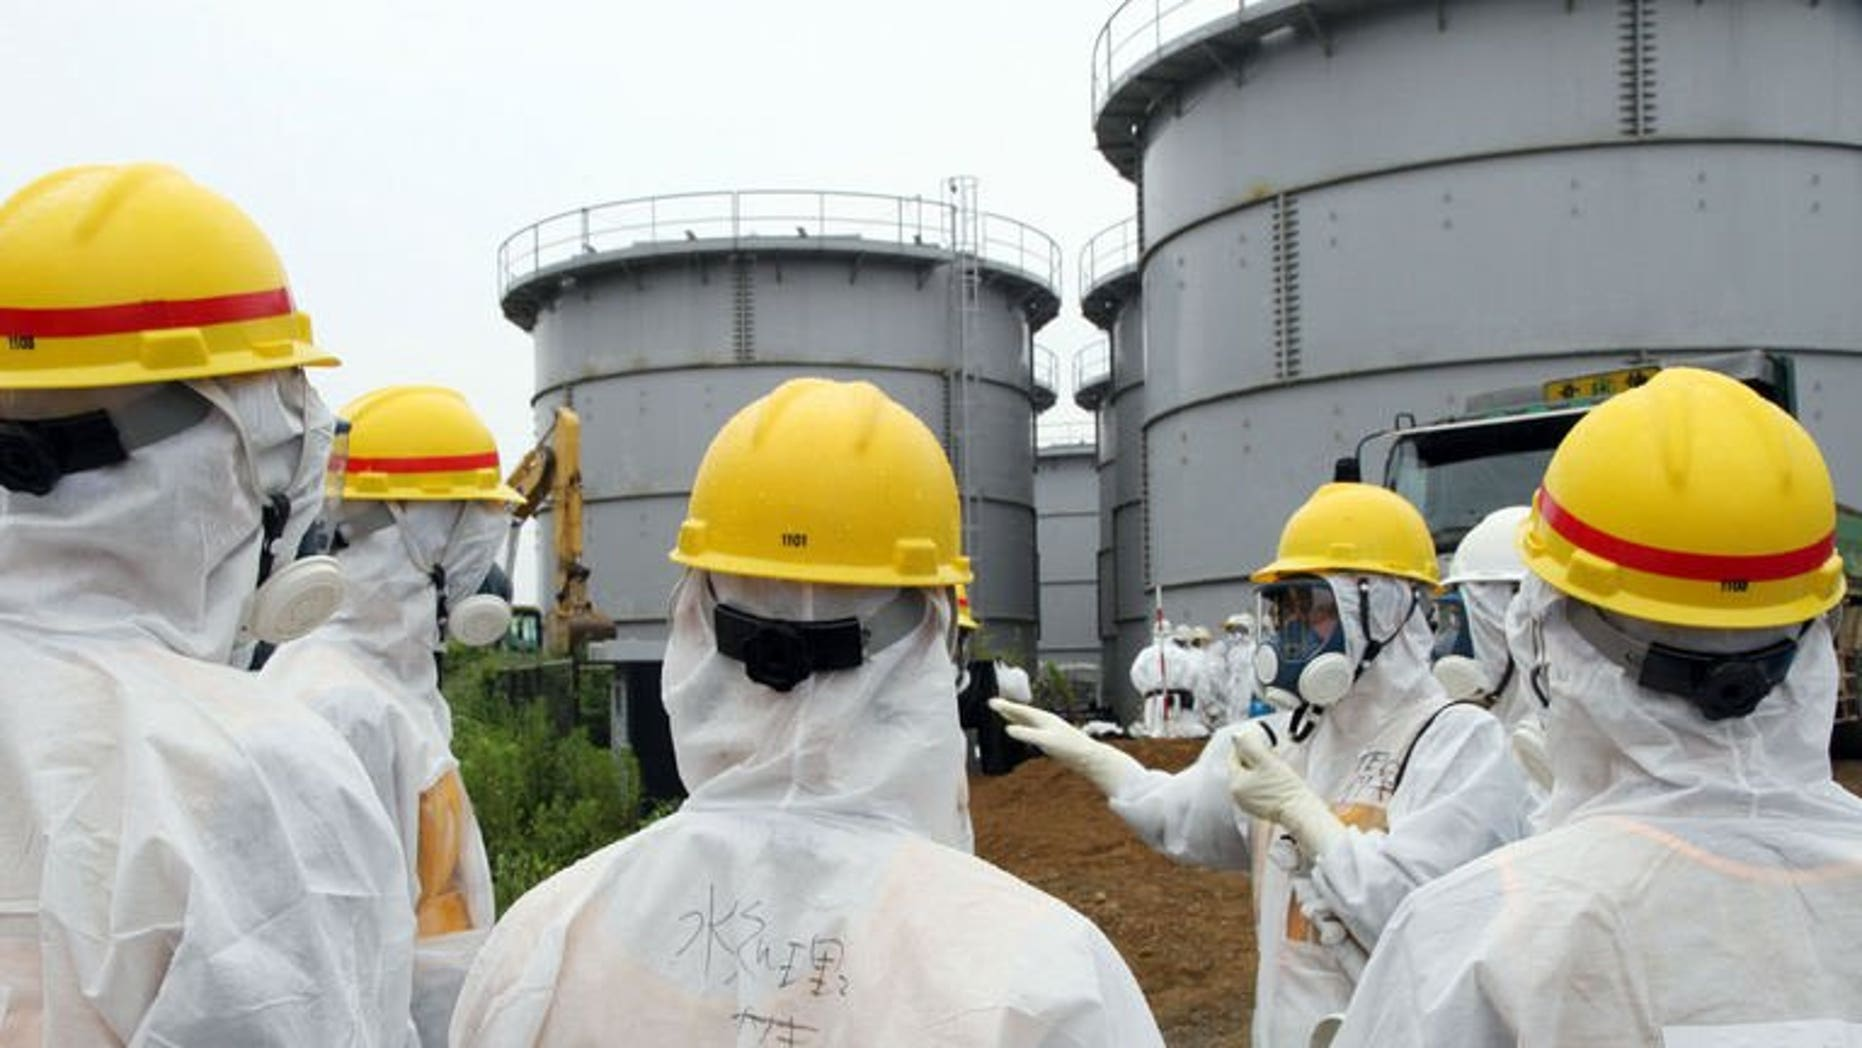 Japan's nuclear watchdog members, including Nuclear Regulation Authority members in radiation protection suits, inspect contaminated water tanks at the Tokyo Electric Power Co (TEPCO) Fukushima Dai-ichi nuclear power plant in the town of Okuma, Fukushima prefecture on August 23, 2013.